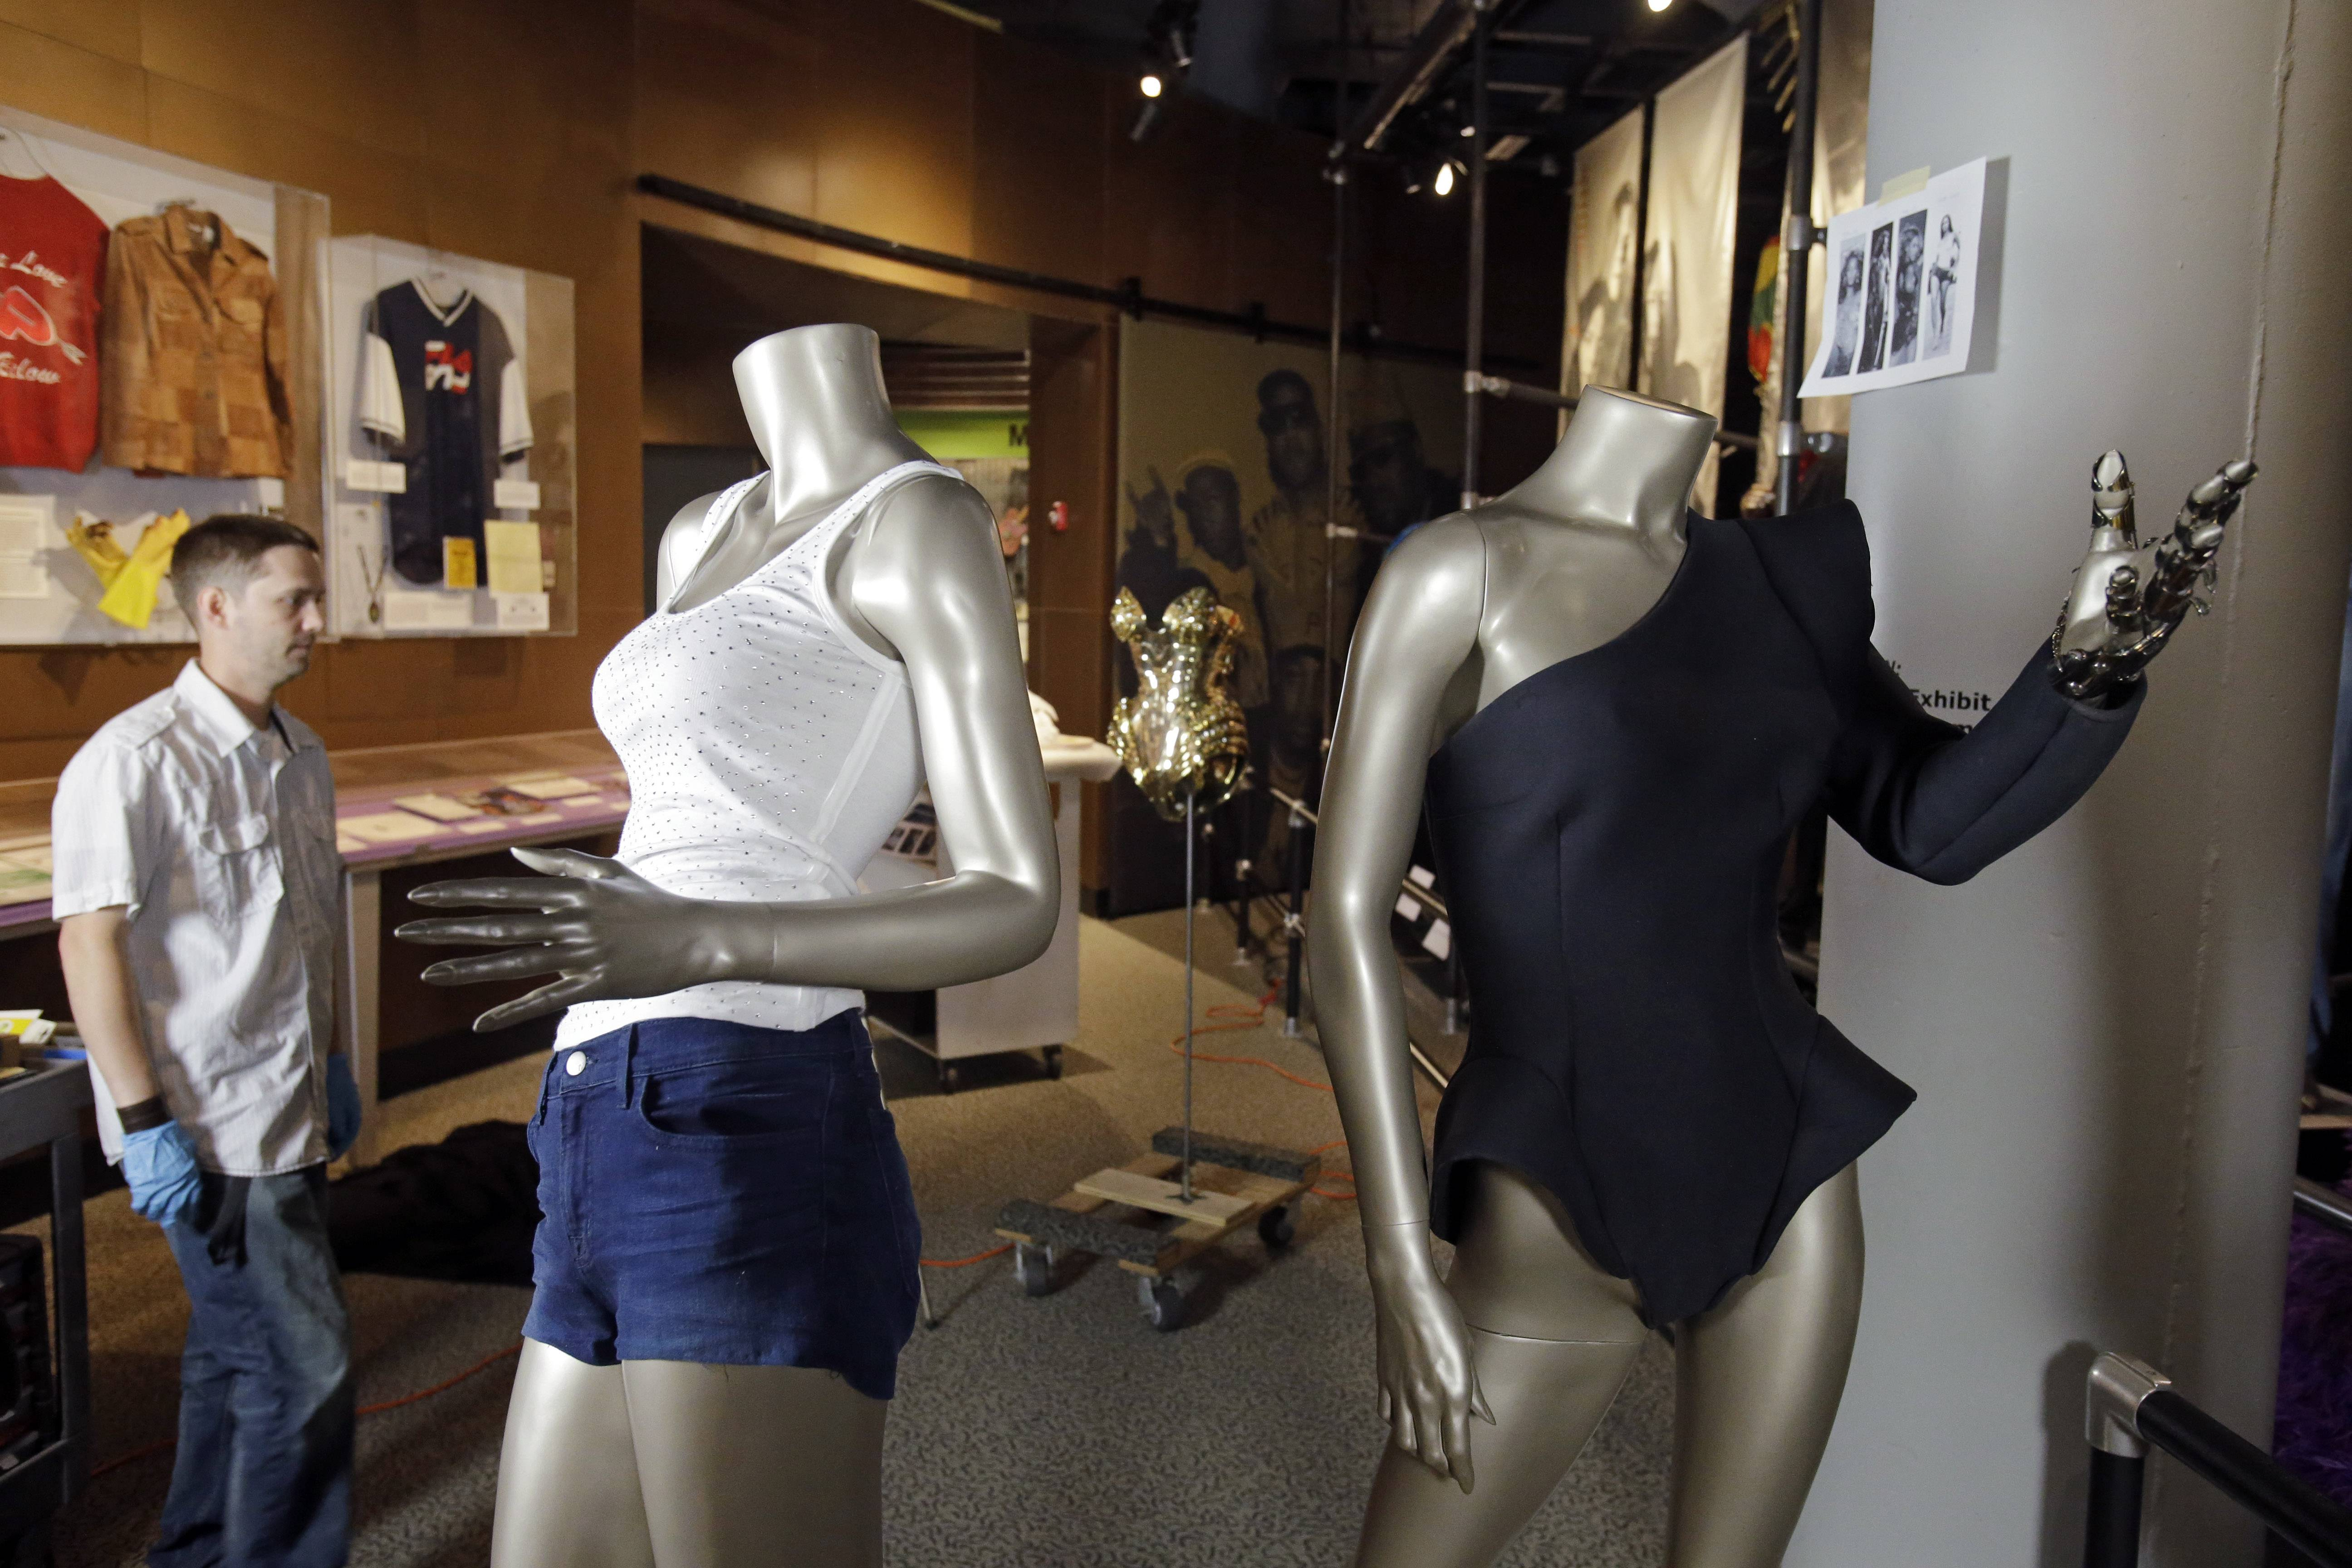 Exhibit designer John Sloboda, left, watches as the Beyoncé exhibit is installed at the Rock and Roll Hall of Fame in Cleveland.